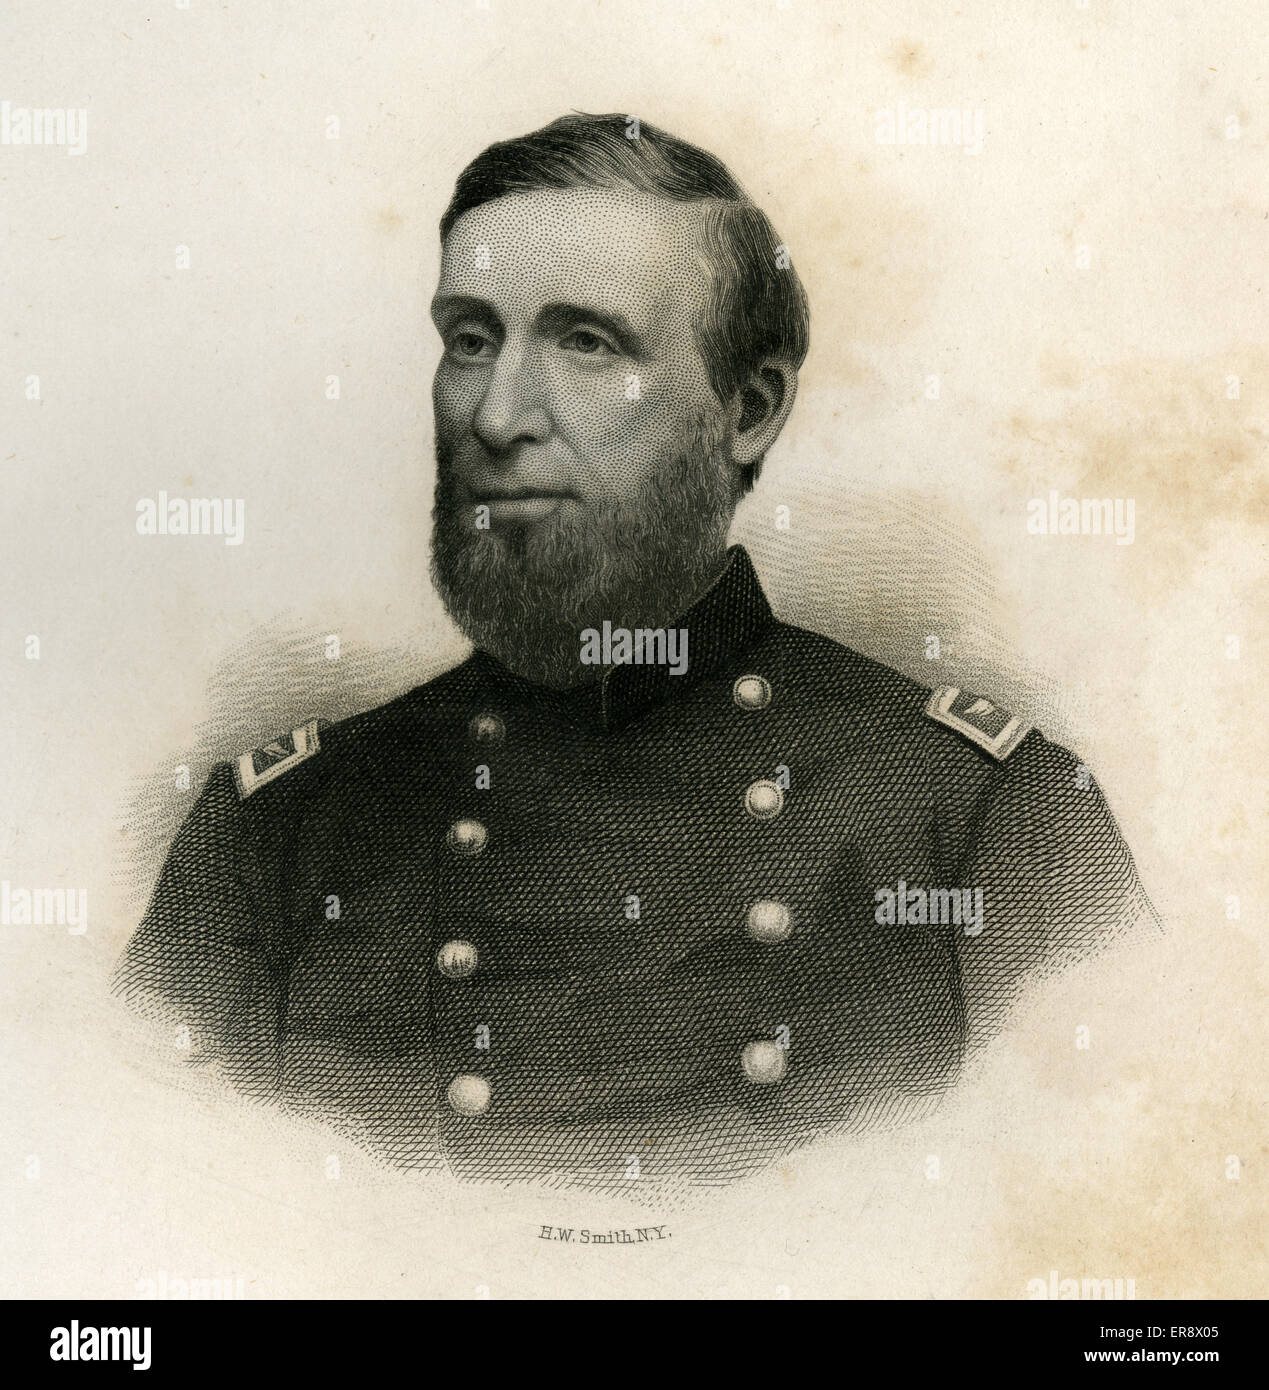 Antique 1866 engraving, Lieutenant Colonel Calvin S. Douty, of the 1st Maine Volunteer Cavalry Regiment. - Stock Image